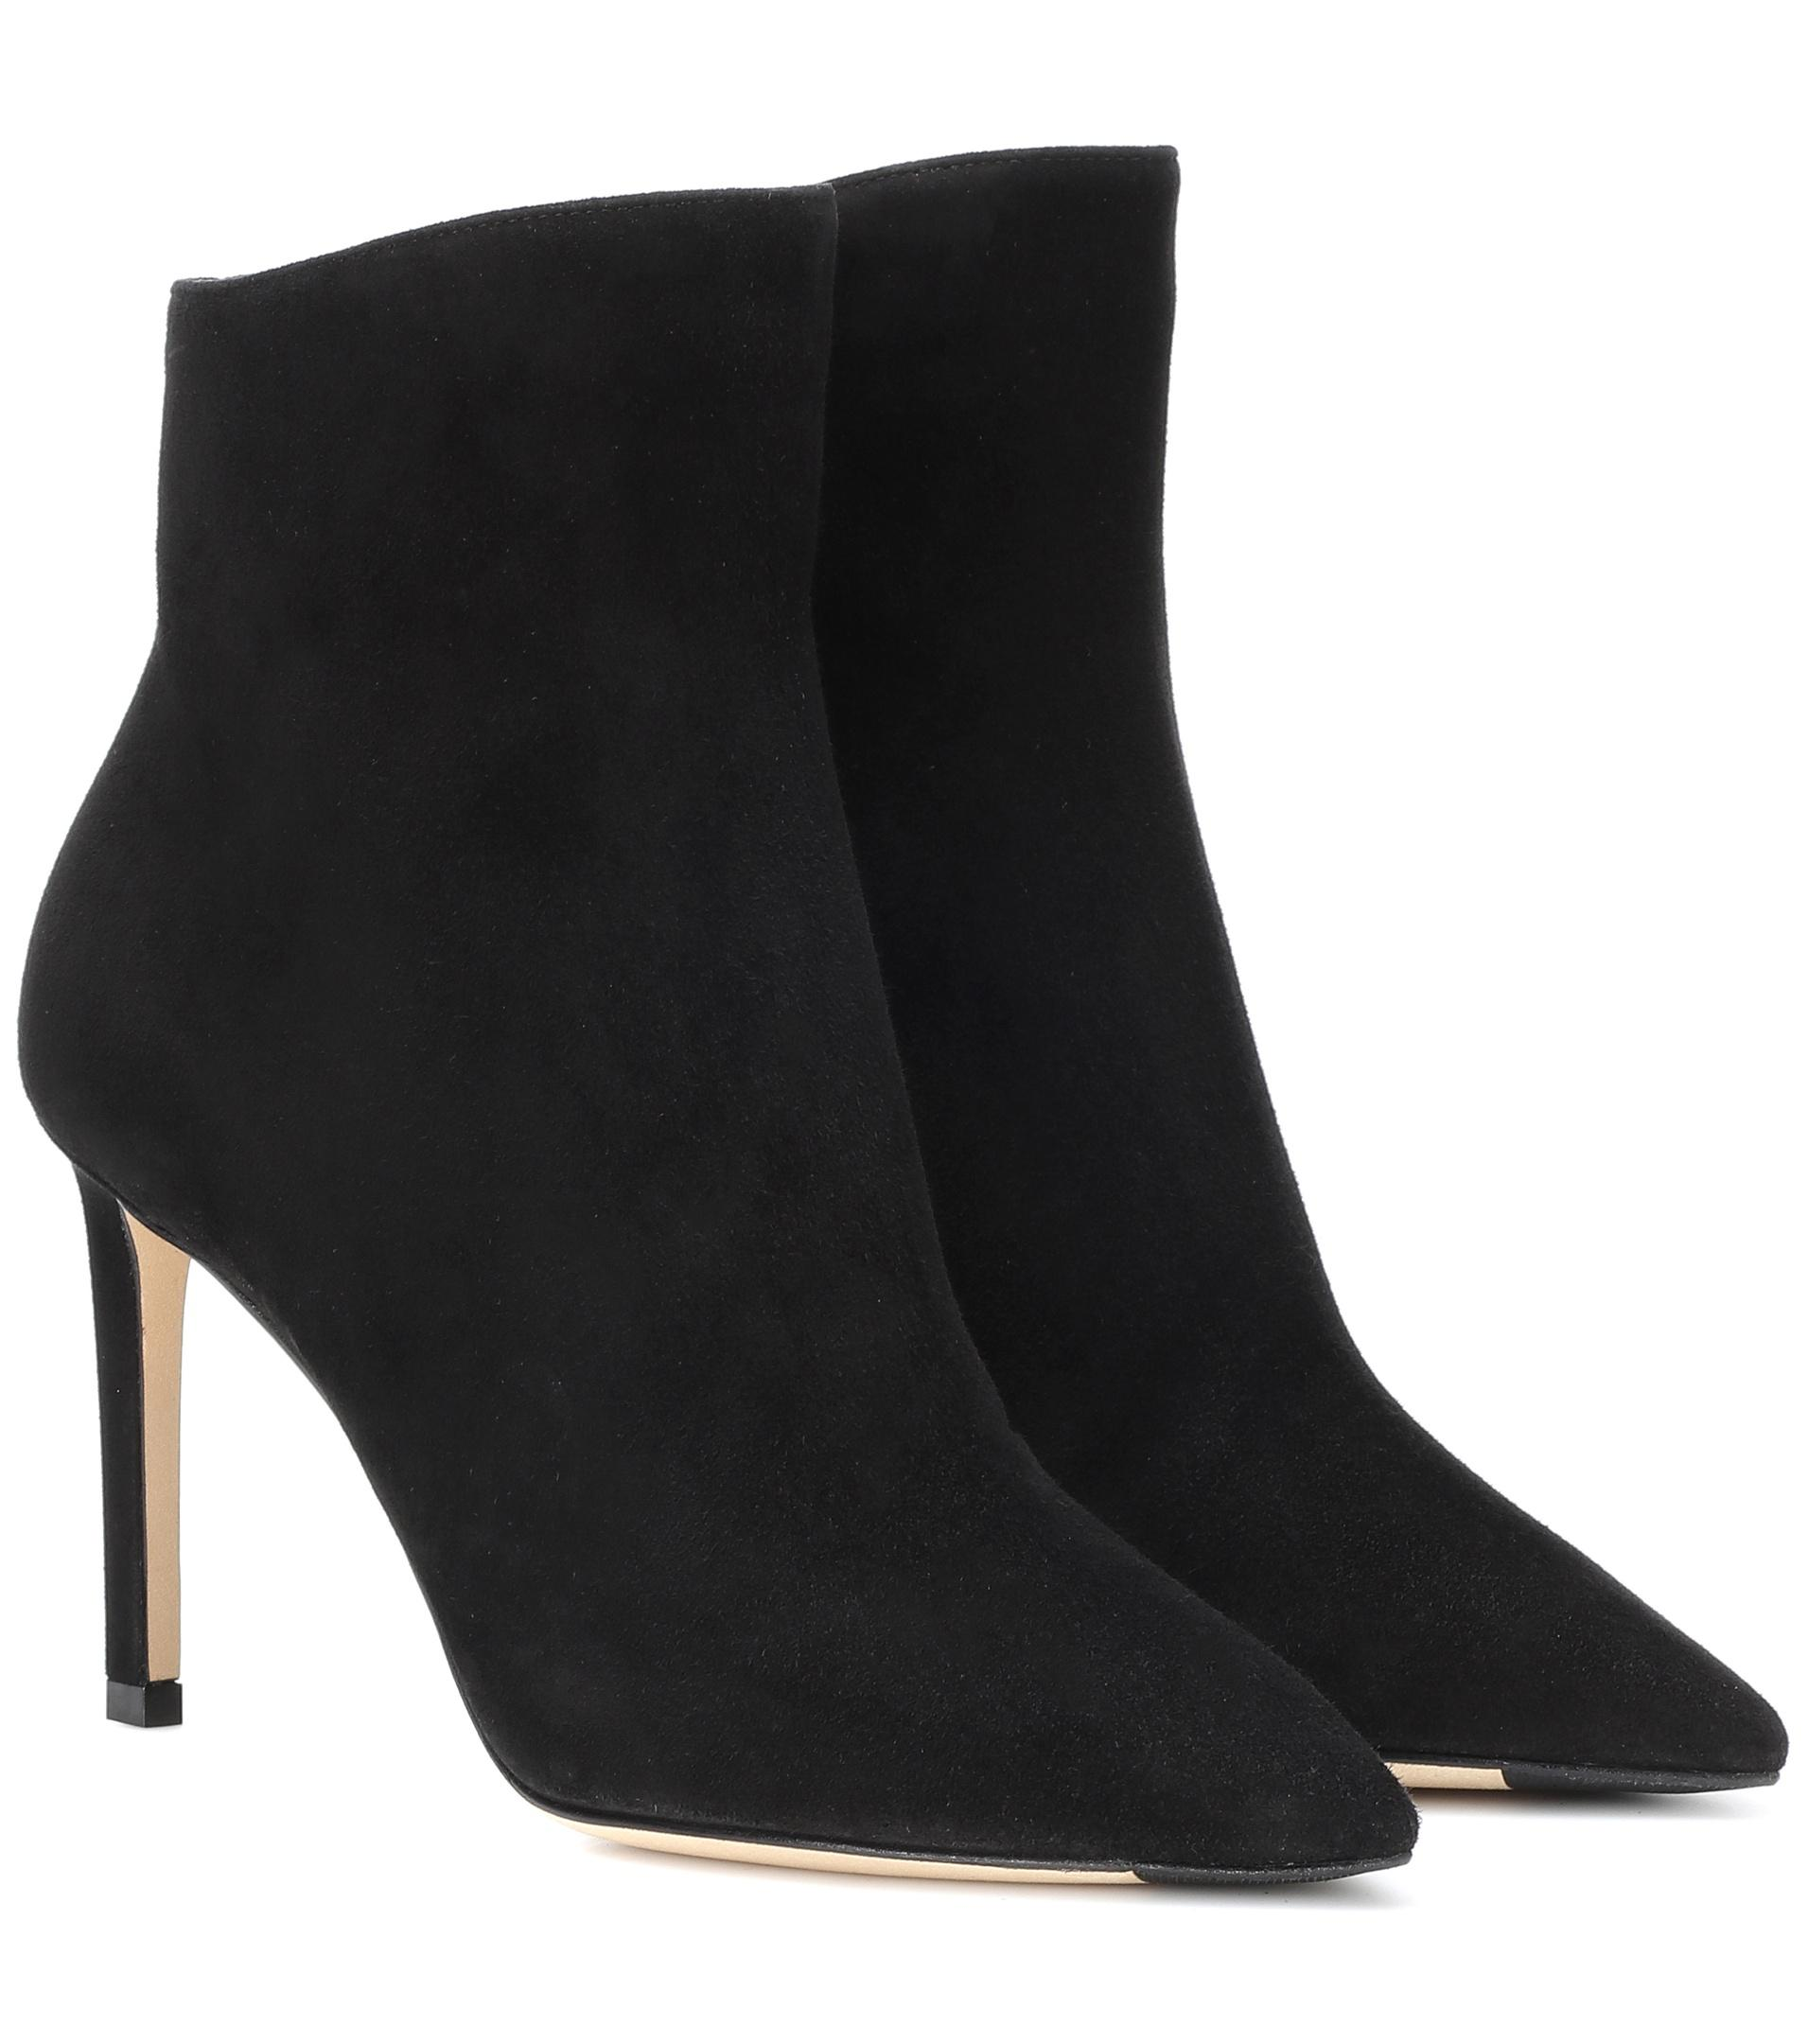 Jimmy choo 100MM HELAINE SUEDE ANKLE BOOTS FDBZIvU